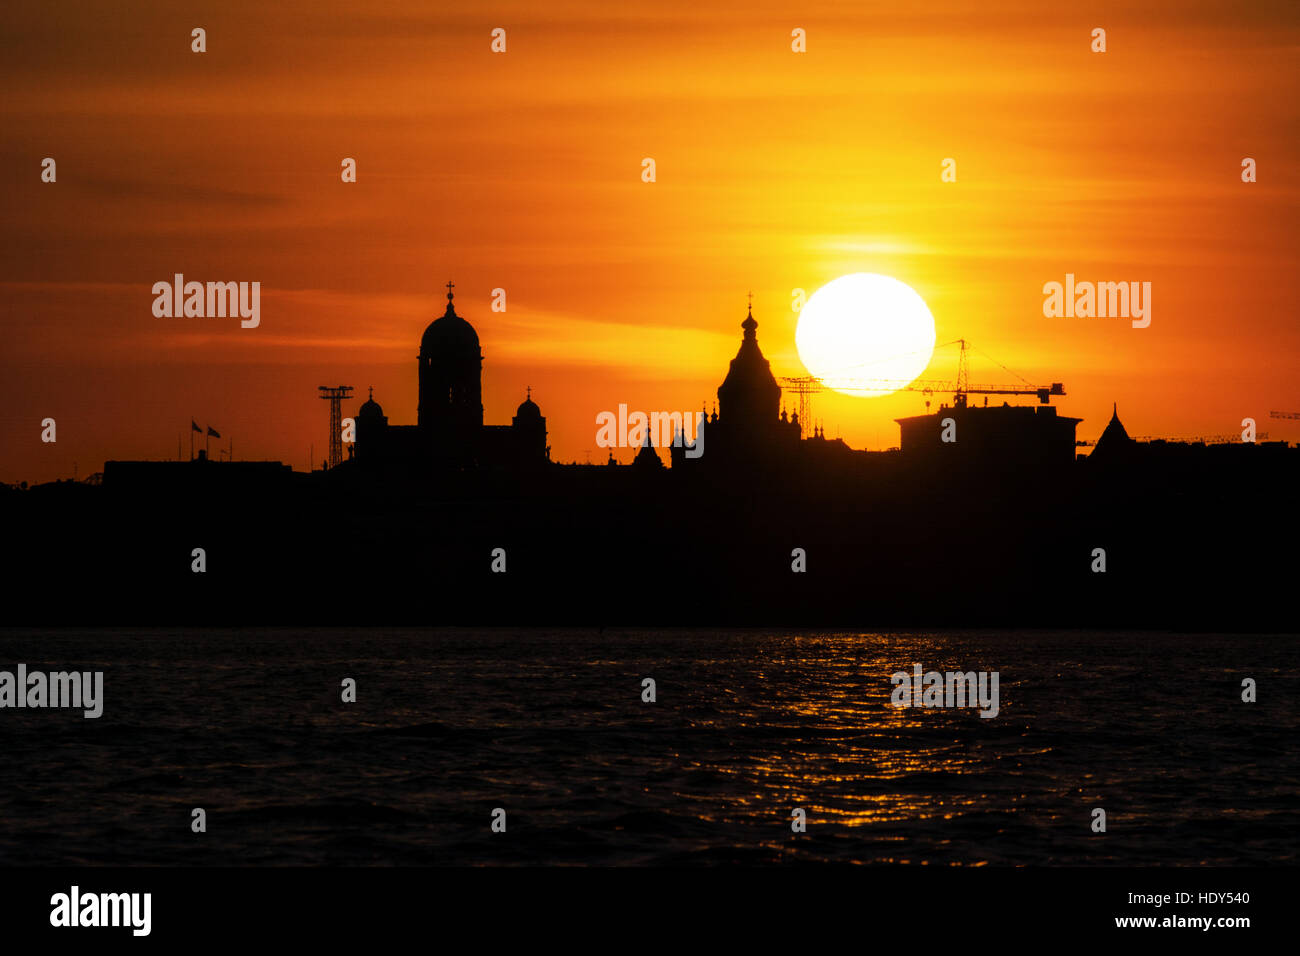 The Silhouette of the Cathedral of Helsinki and its nearby houses - Stock Image